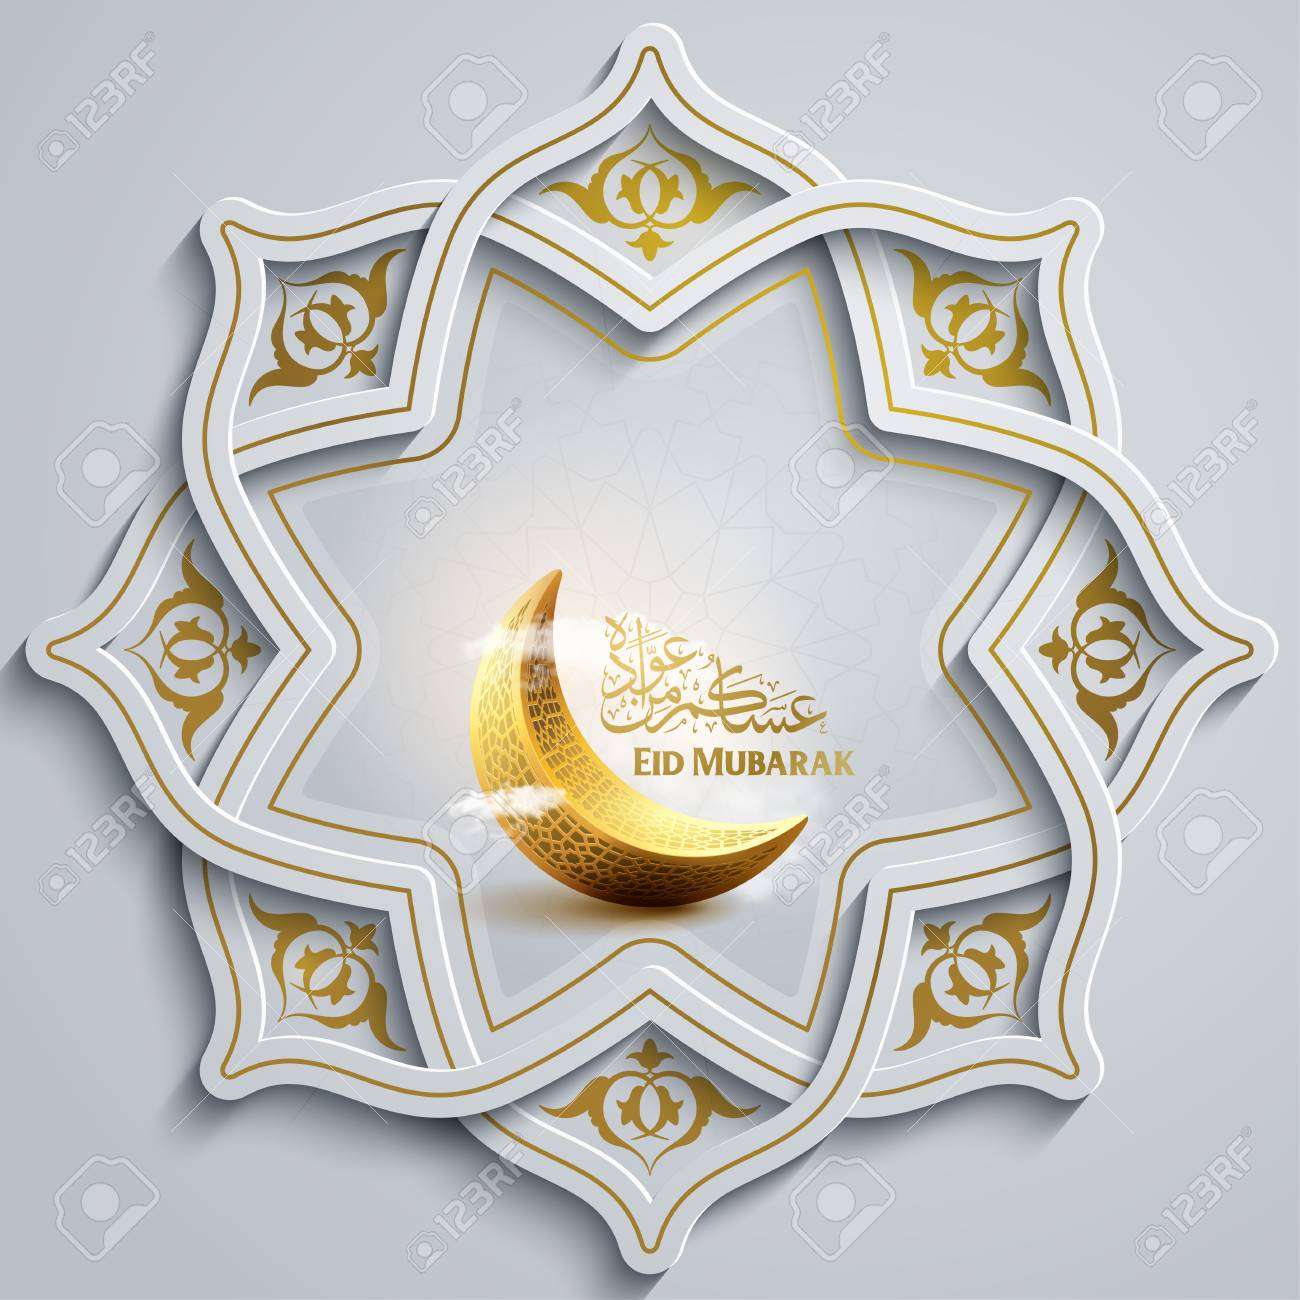 Eid Mubarak Islamic greeting banner Abstrack background with arabic geometric and floral pattern - 120665805